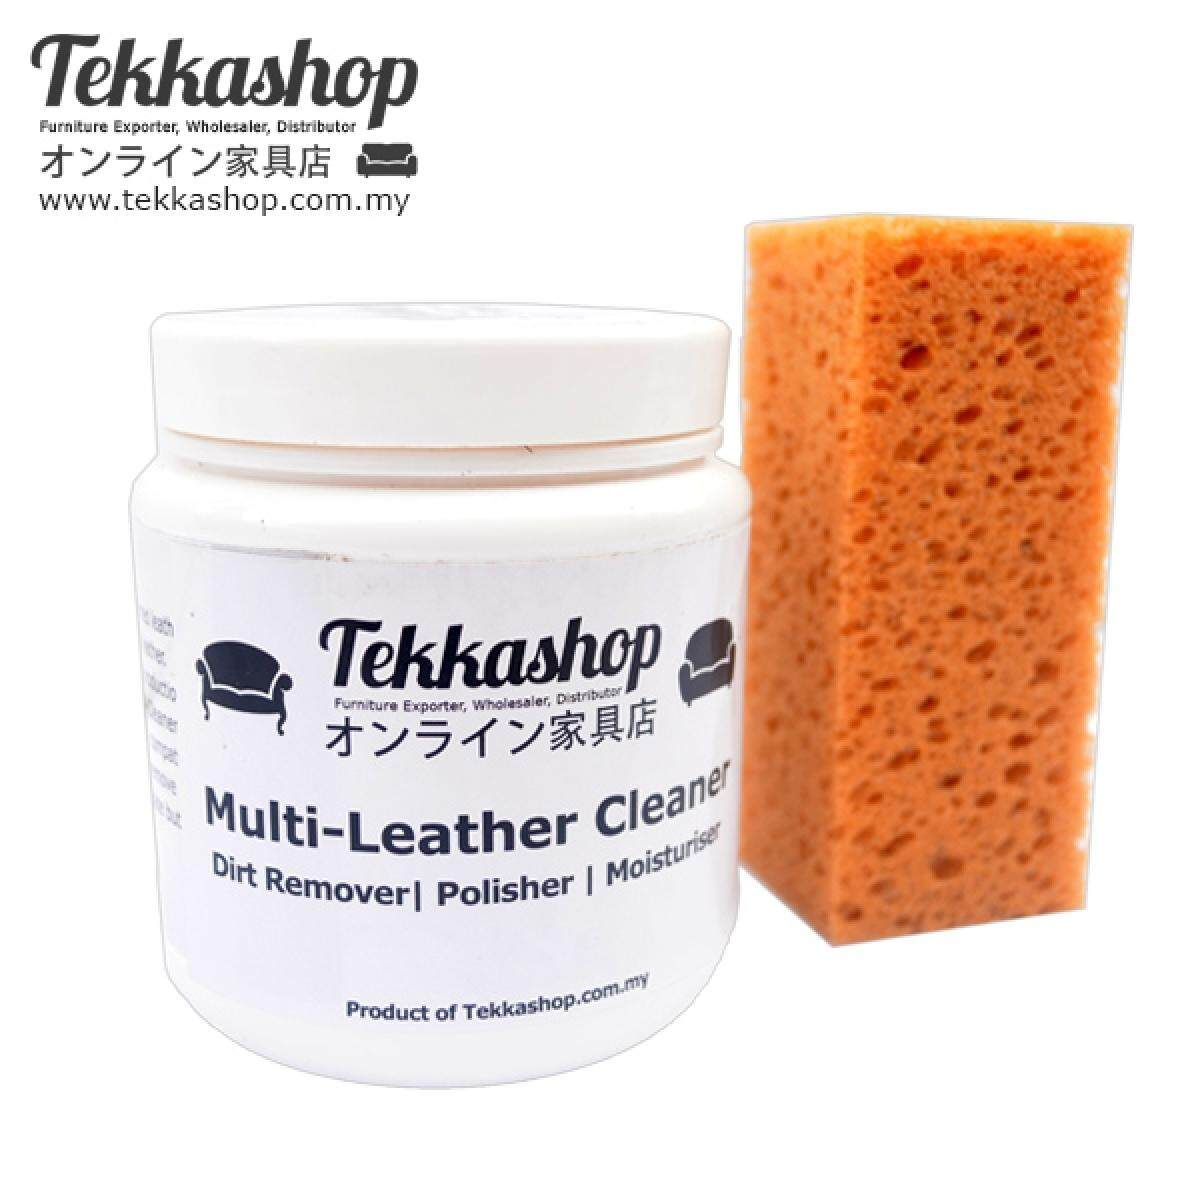 Tekkashop ML250 Multi Leather Cleaner Leather Furniture Moisturiser Gel 250g + Free Sponge